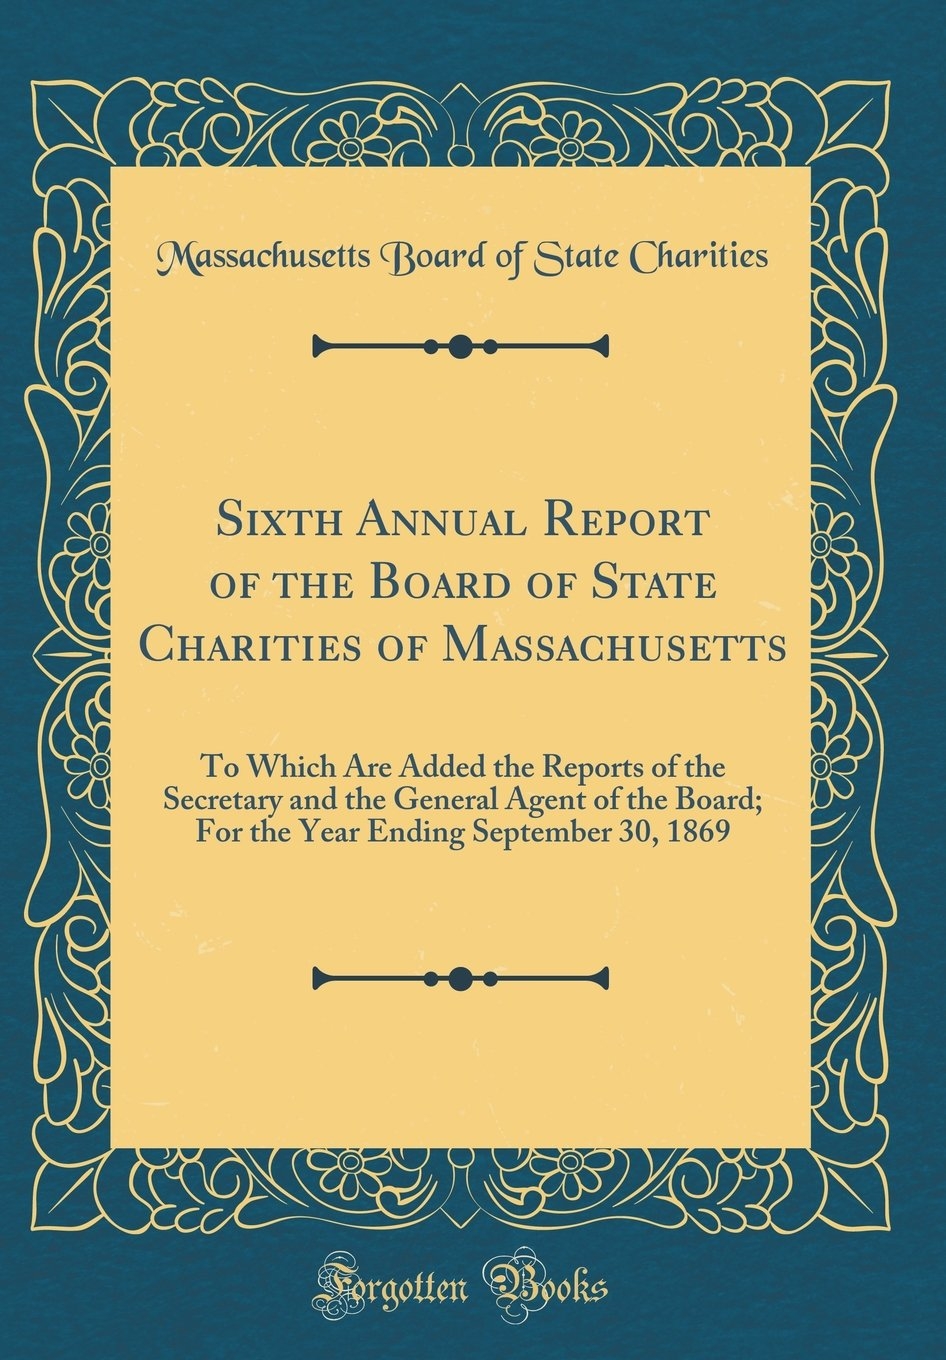 Read Online Sixth Annual Report of the Board of State Charities of Massachusetts: To Which Are Added the Reports of the Secretary and the General Agent of the ... Ending September 30, 1869 (Classic Reprint) pdf